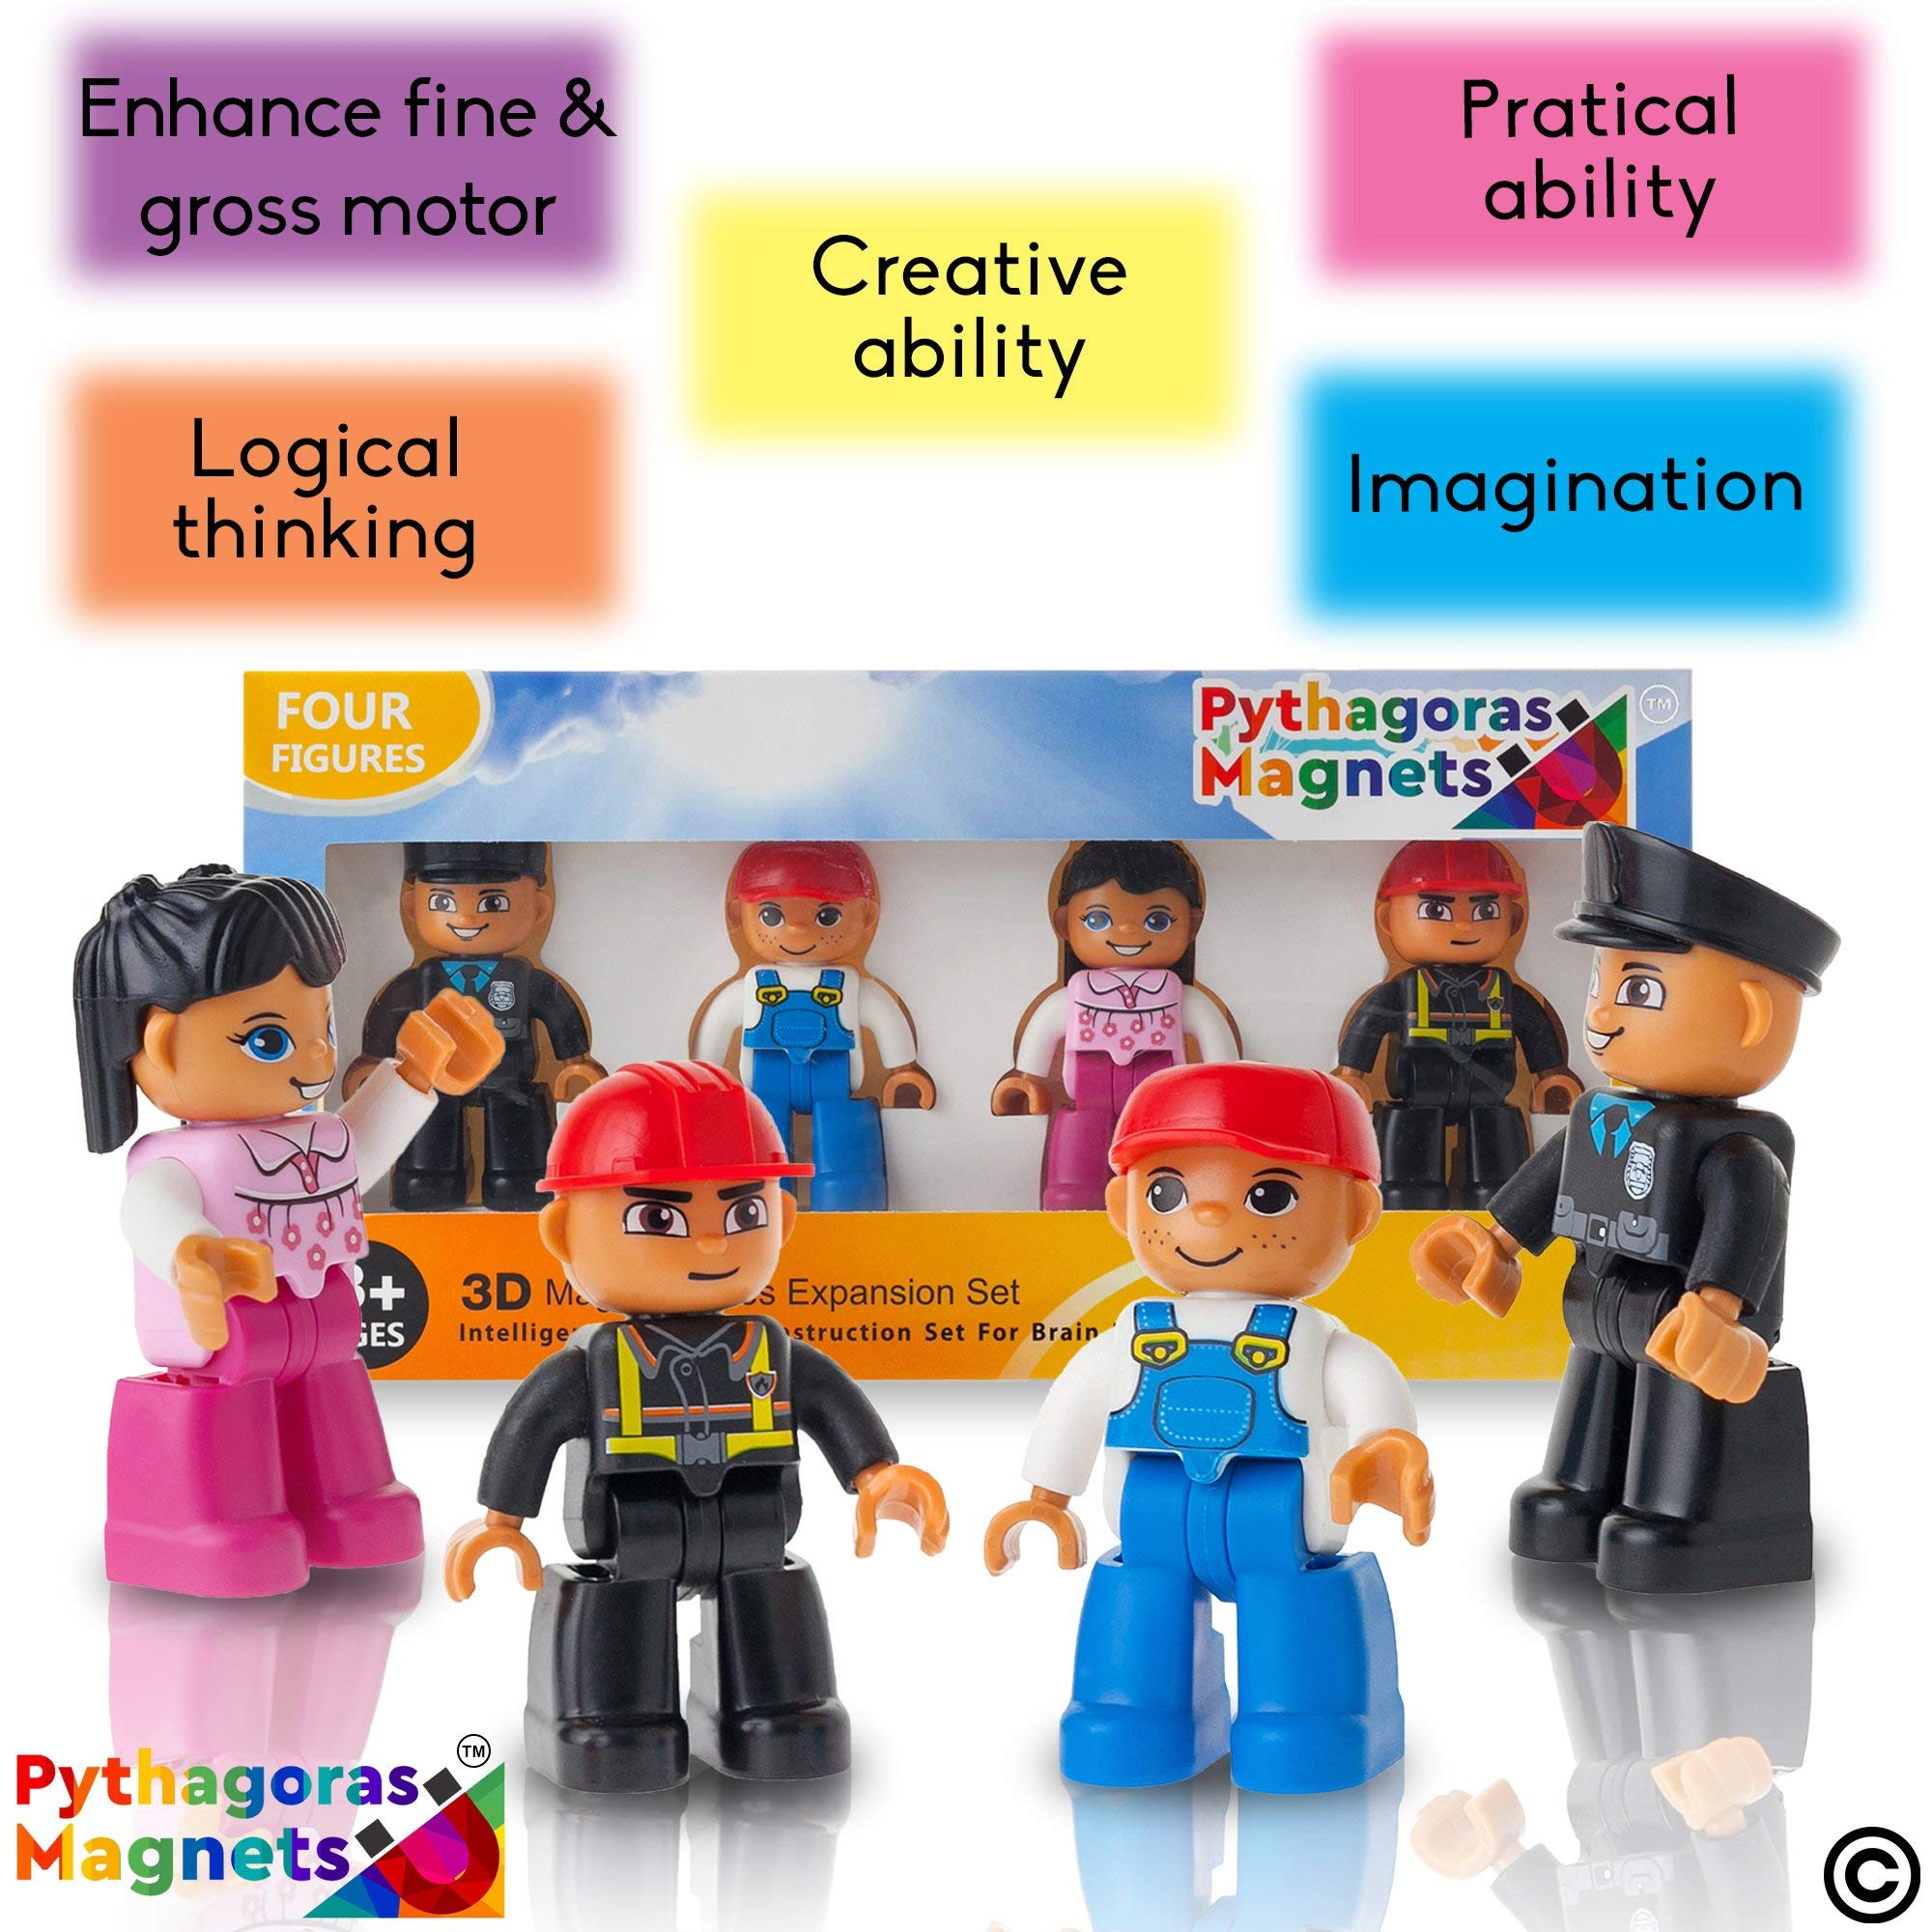 Magnetic Figures Set of 4-Toddlers Community Action Toy People, Magnetic Tiles Expansion Pack for Boys and Girls - Nurse, Builder, Fireman, Police Educational STEM Toys Add on Sets for Magnetic Blocks by Pythagoras Magnets (Image #6)